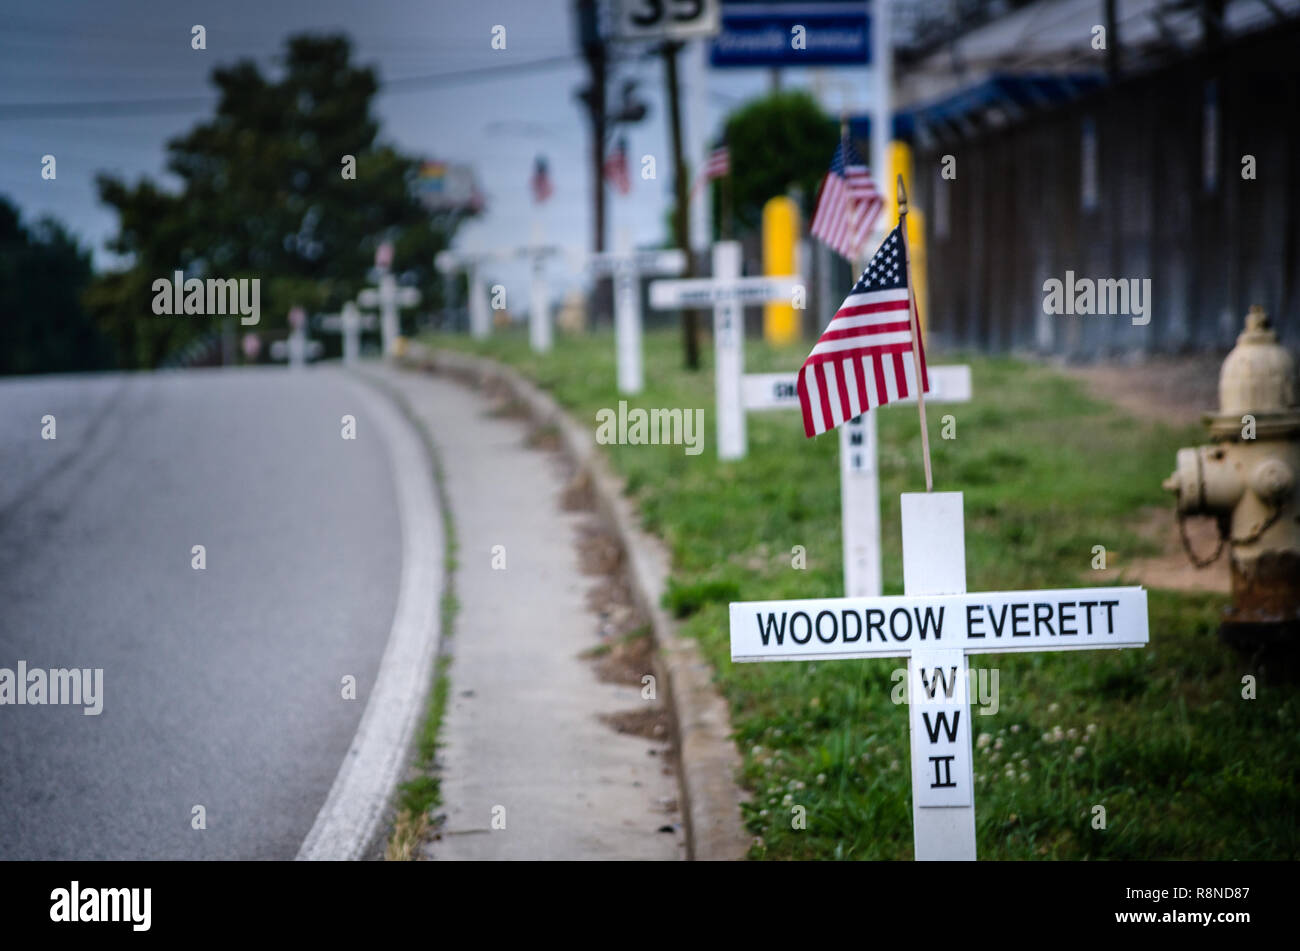 White crosses line New Peachtree Road in Doraville, Georgia, May 29, 2014. The crosses bear the names of the town's fallen war veterans. (Photo by Car - Stock Image